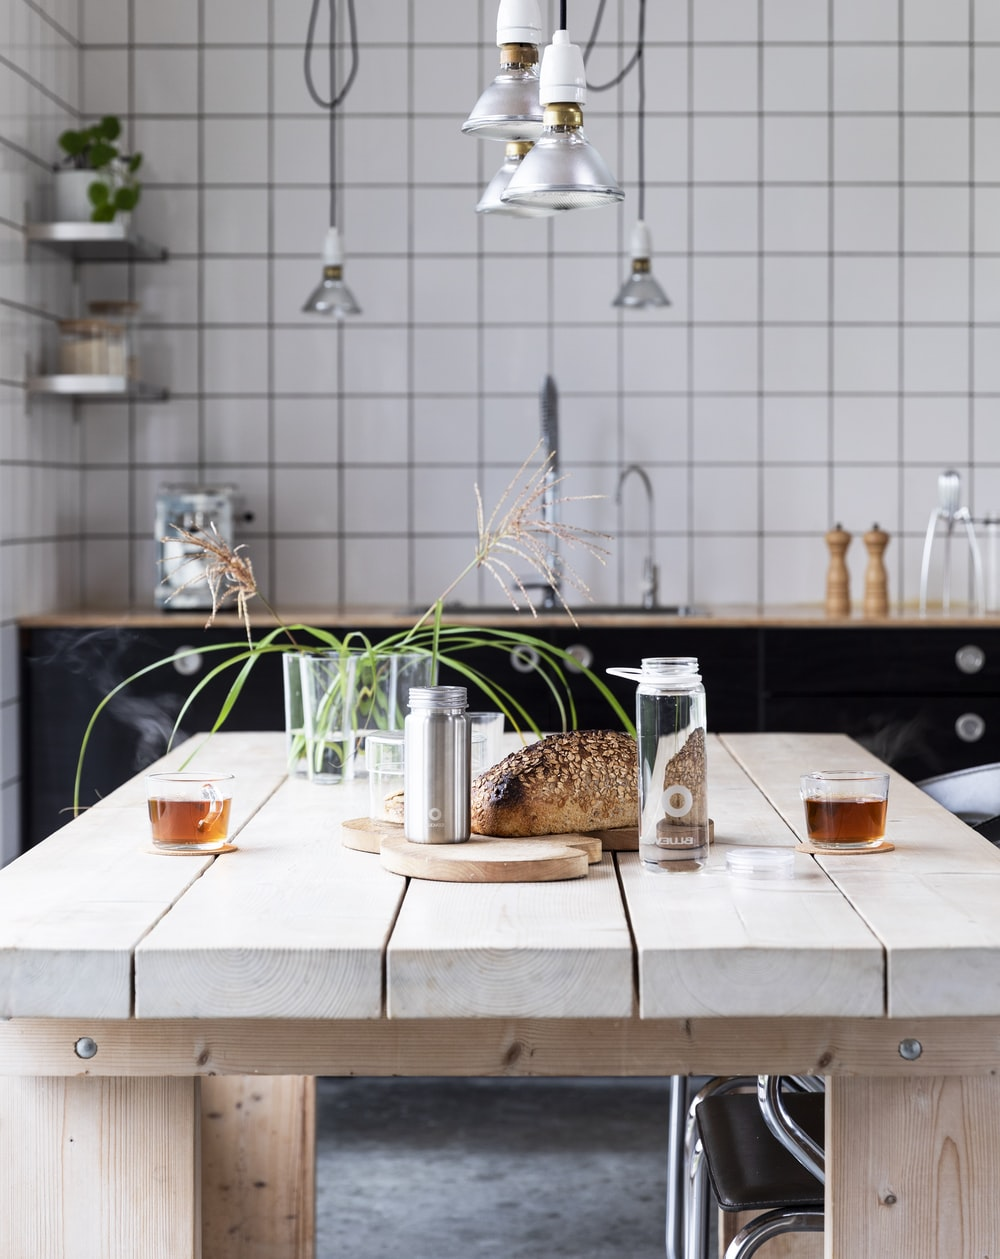 Best 9+ Kitchen Table Pictures   Download Free Images on Unsplash